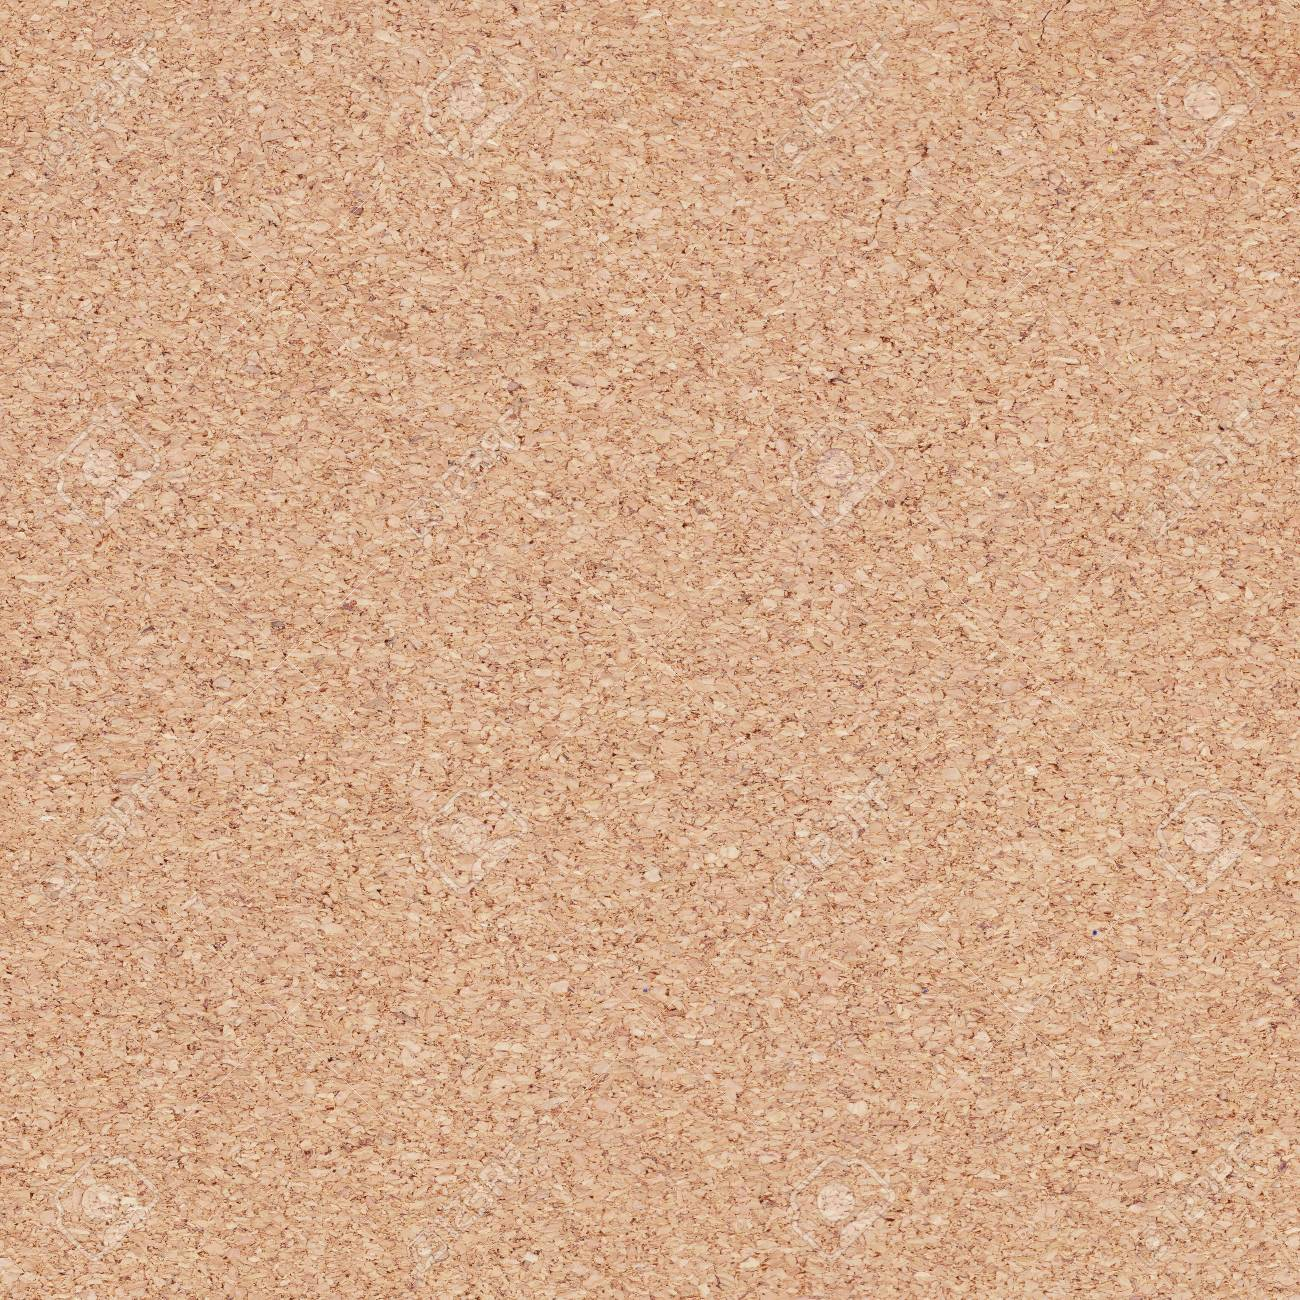 cork board wallpaper  Old Corkboard Wallpaper Background For Design And Scrapbooking Stock ...